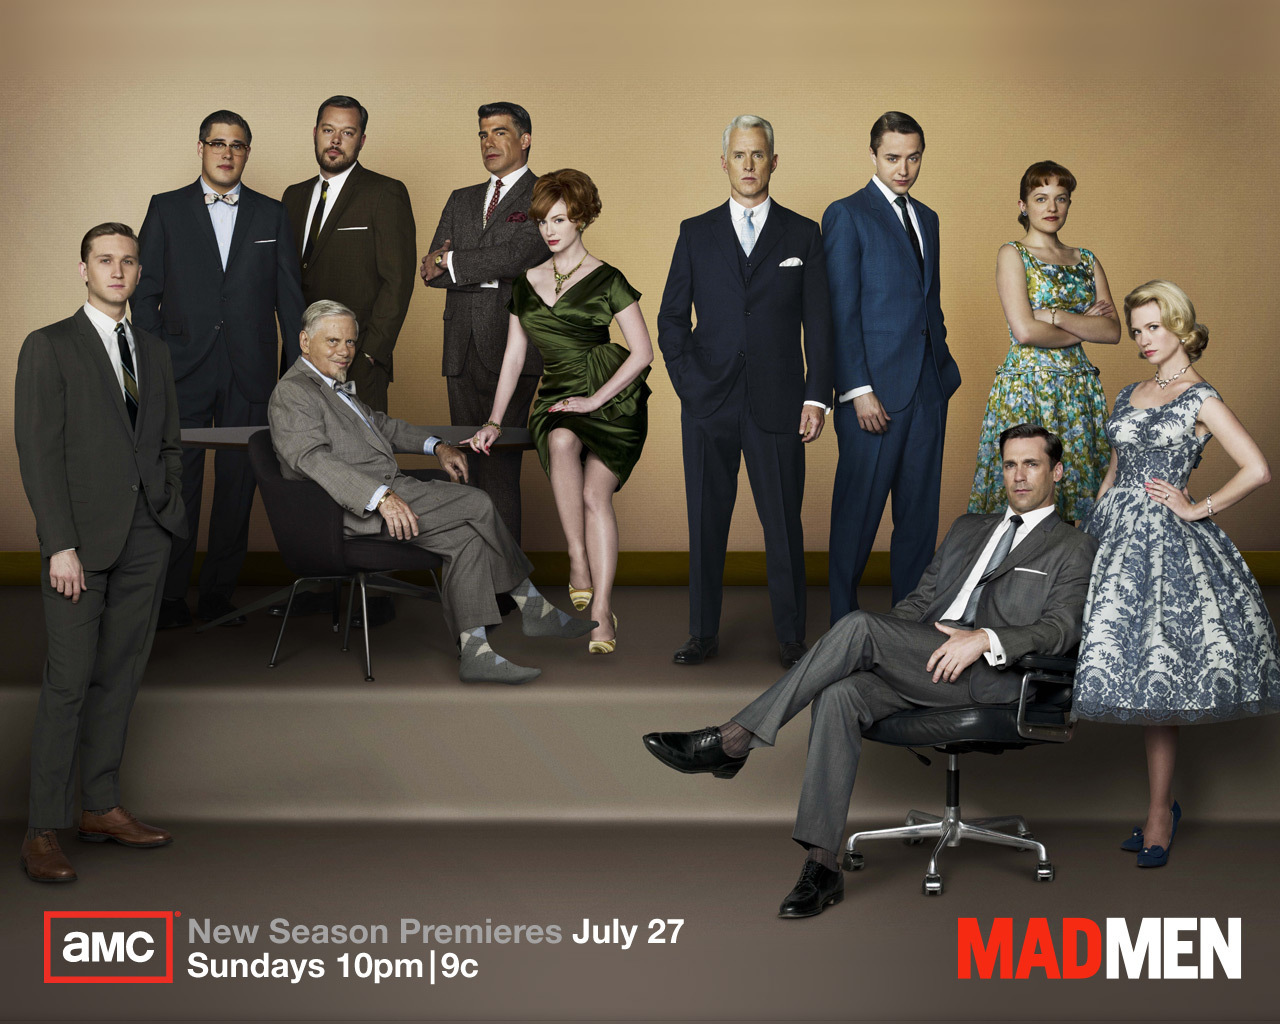 MM cast wallpaper Season 2 - Mad Men Wallpaper (2255260 ...